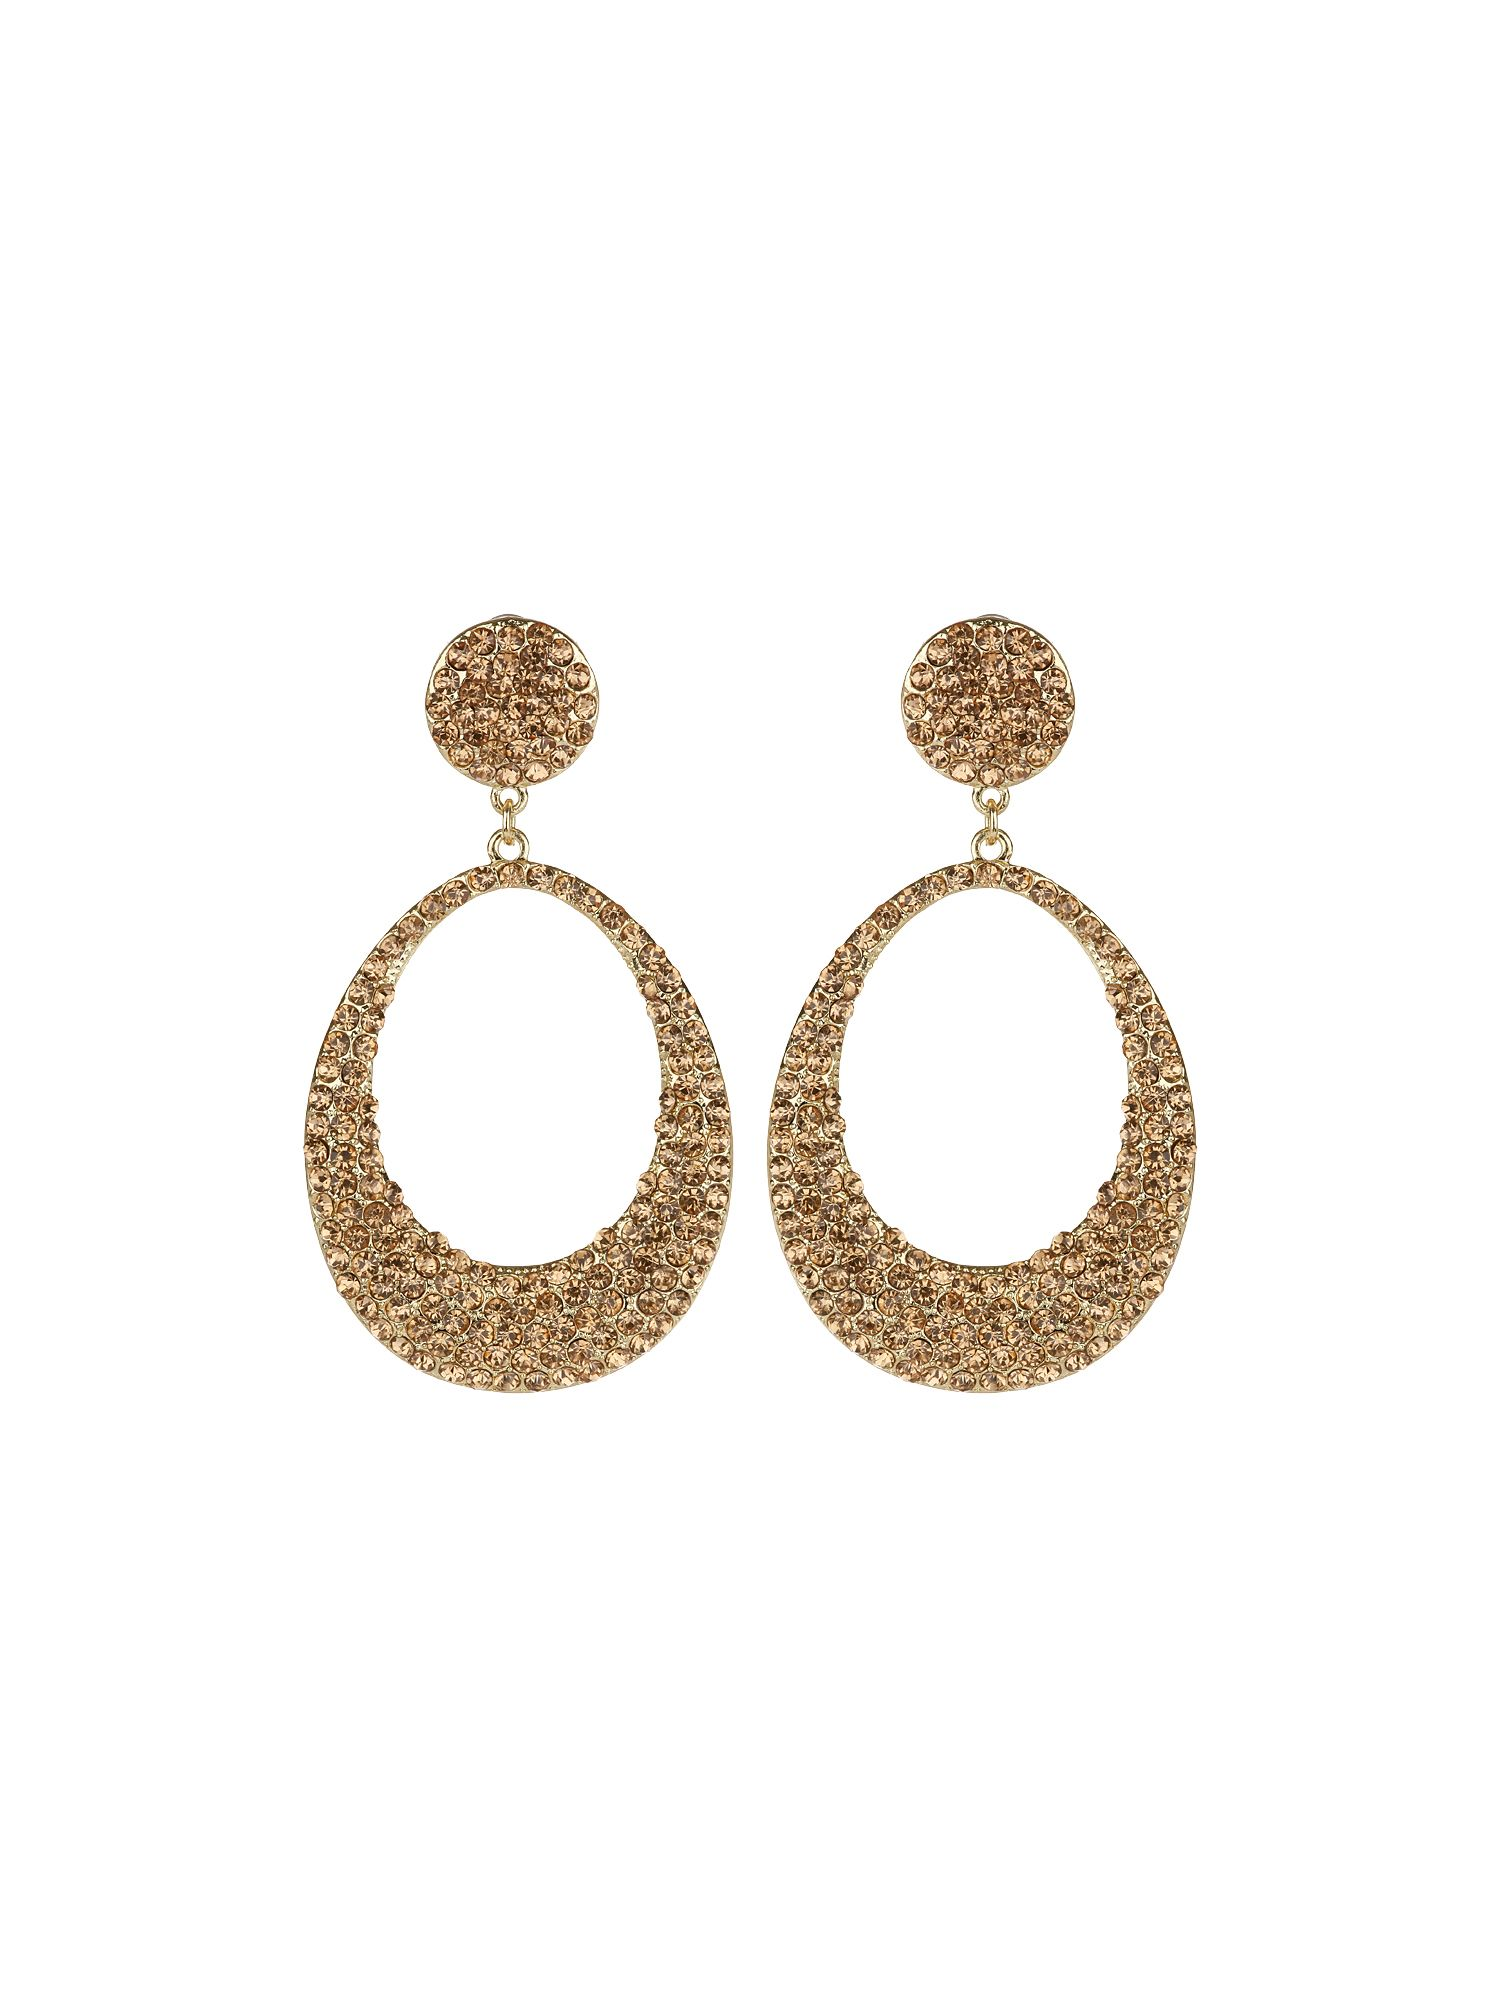 Oval Design Earring